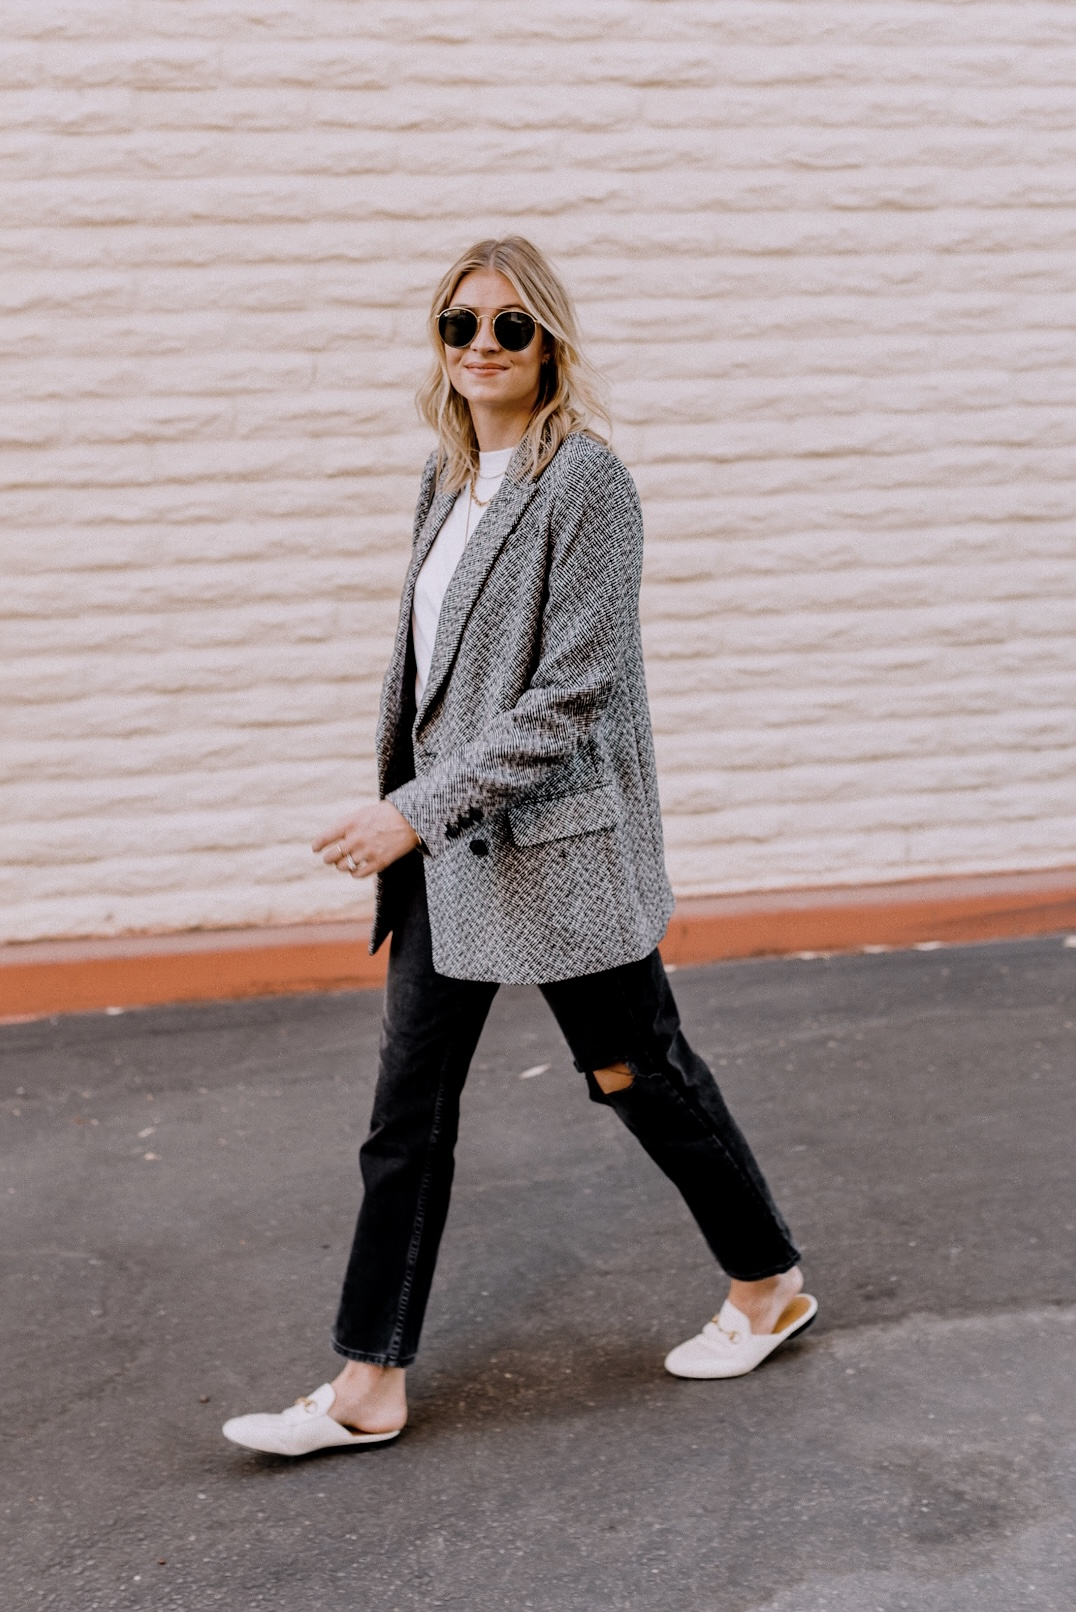 Blazers for Women by popular San Diego fashion blog, Navy Grace: image of a woman wearing a H&M Double-breasted Jacket, Nordstorm TopShop Chicago Ripped Knee High Waist Dad Jeans, Everlane The Air Oversized Crew Tee, Nordstrom Gucci Princetown Loafer Mule, Nordstrom Gucci Matelassé Leather Shoulder Bag, and Nordstrom Ray-Ban Icons 53mm Retro Sunglasses.